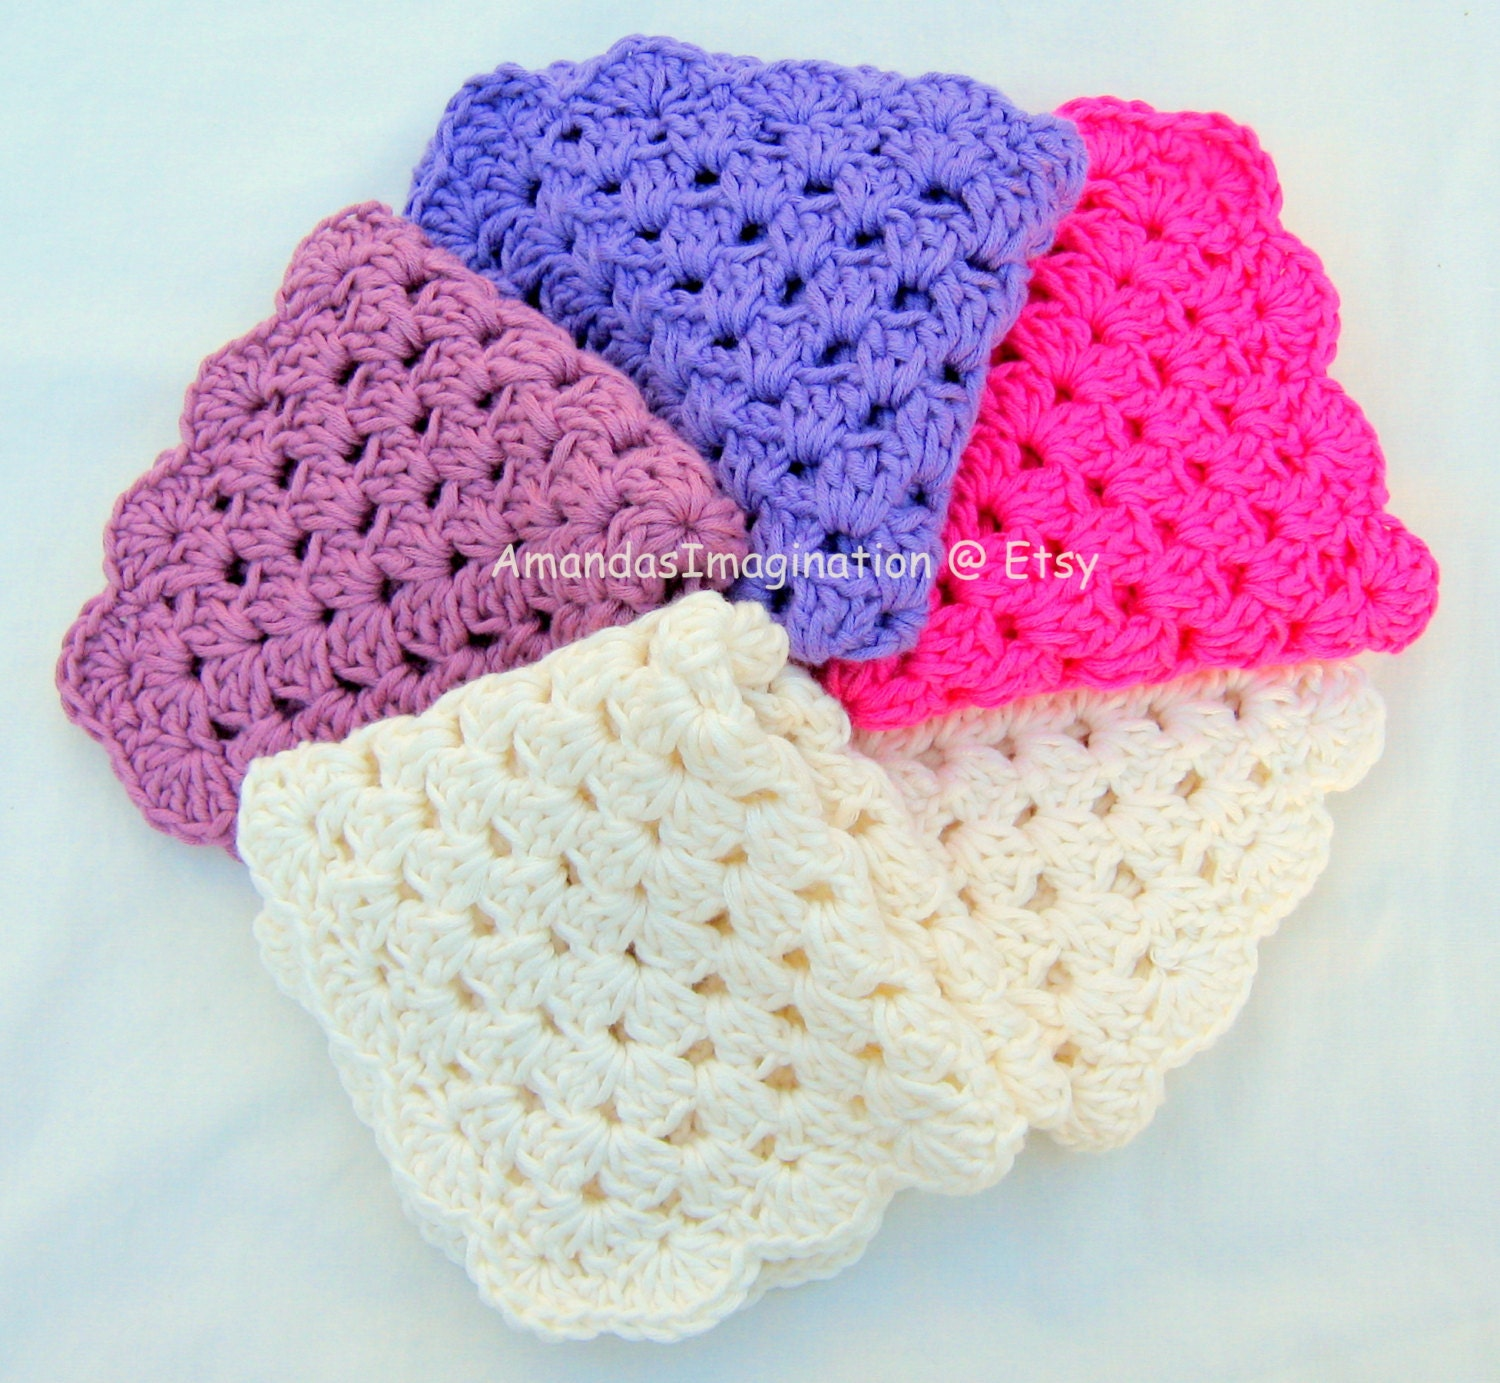 Crochet Granny Square Dishcloth Pattern : Crochet Dishcloth Pattern Pdf Granny Square Design UK terms